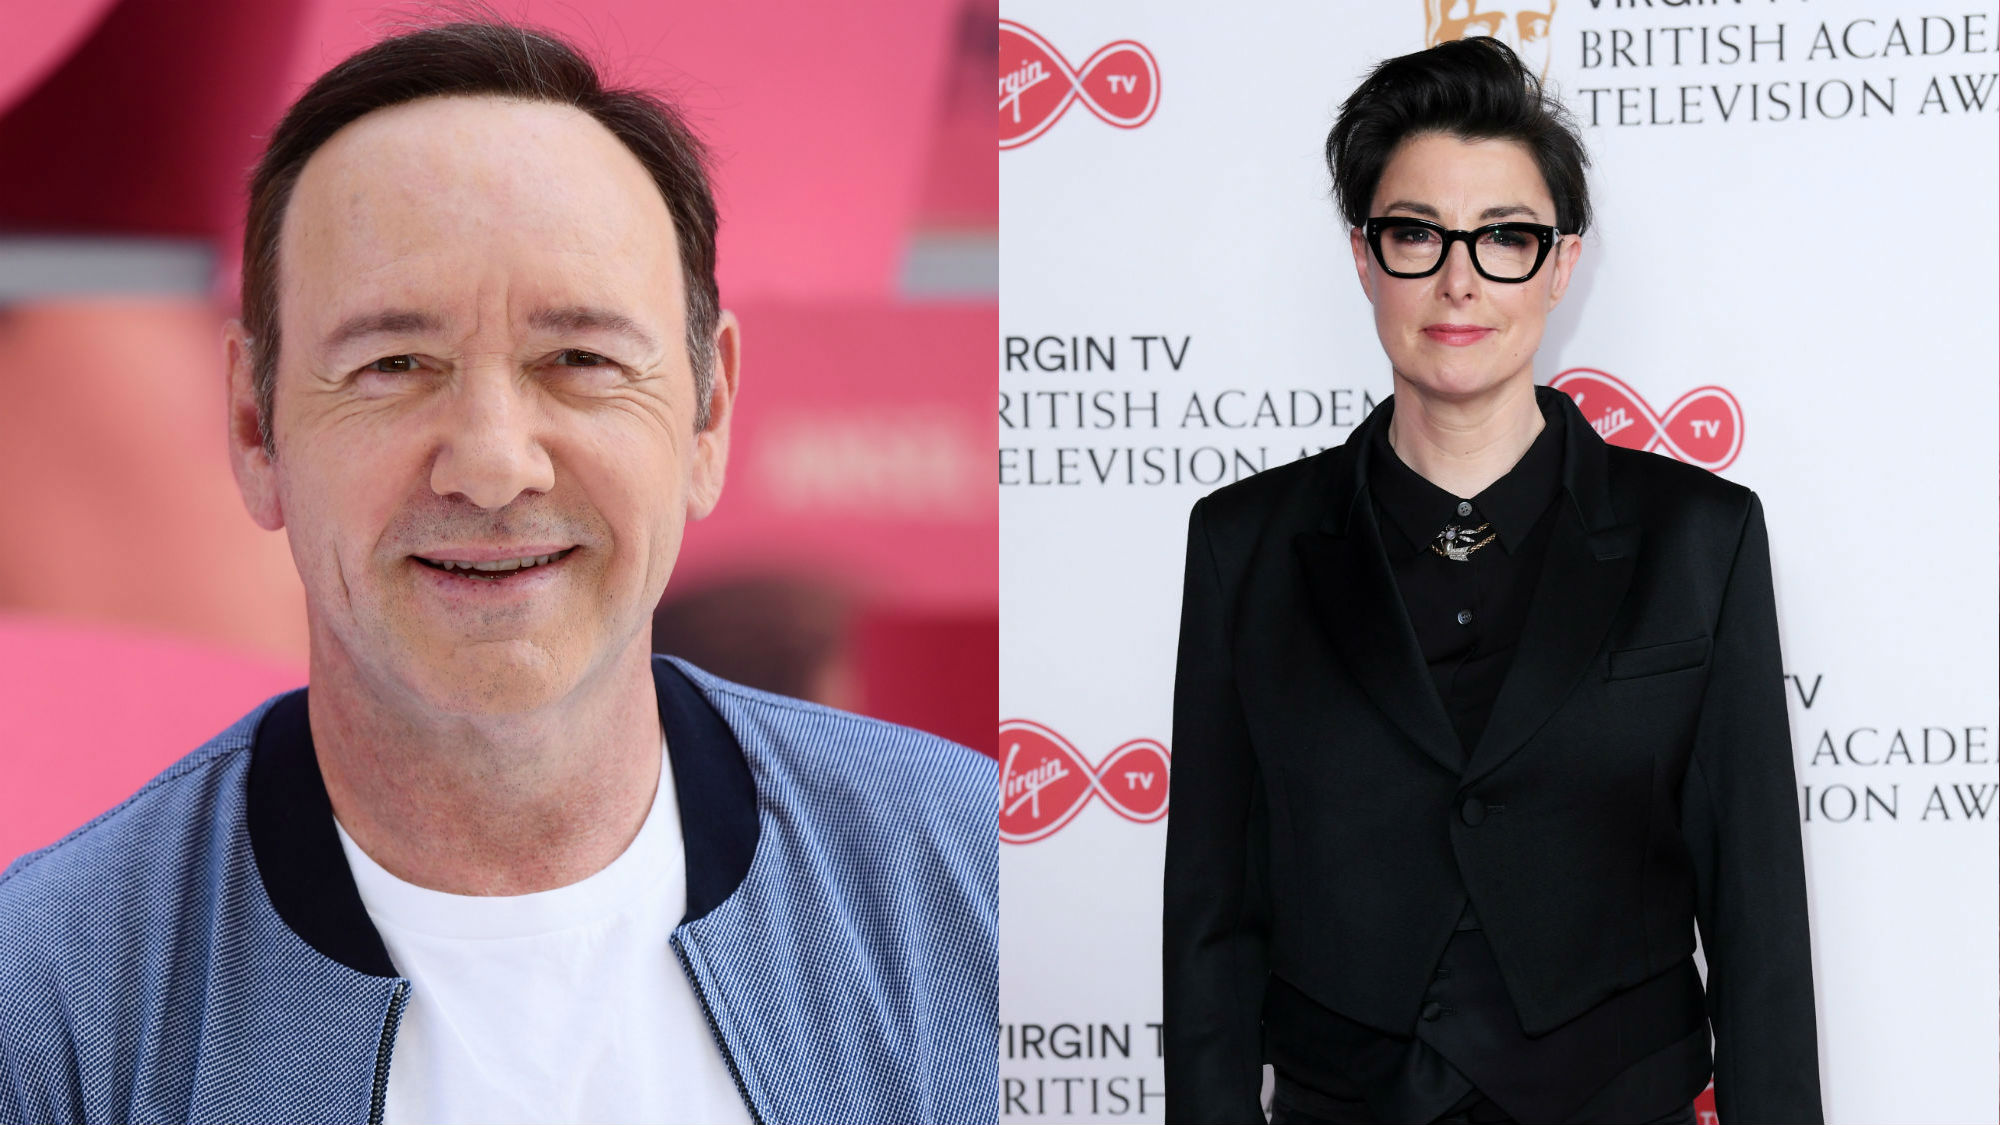 Sue Perkins had a blistering response to Kevin Spacey's sexual assault statement